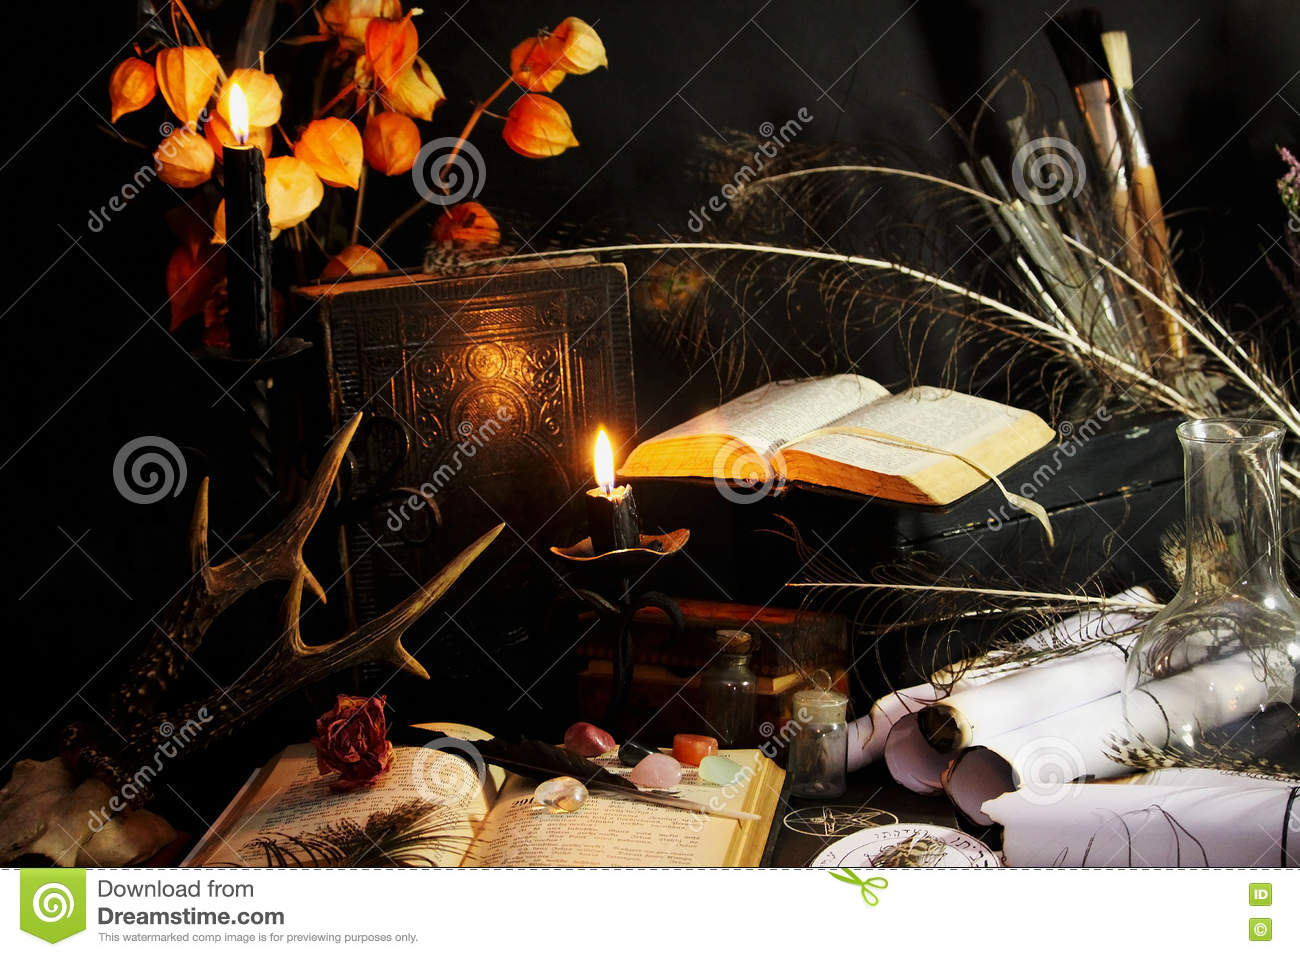 Black Magic Ritual stock photo  Image of flame, book - 80988362